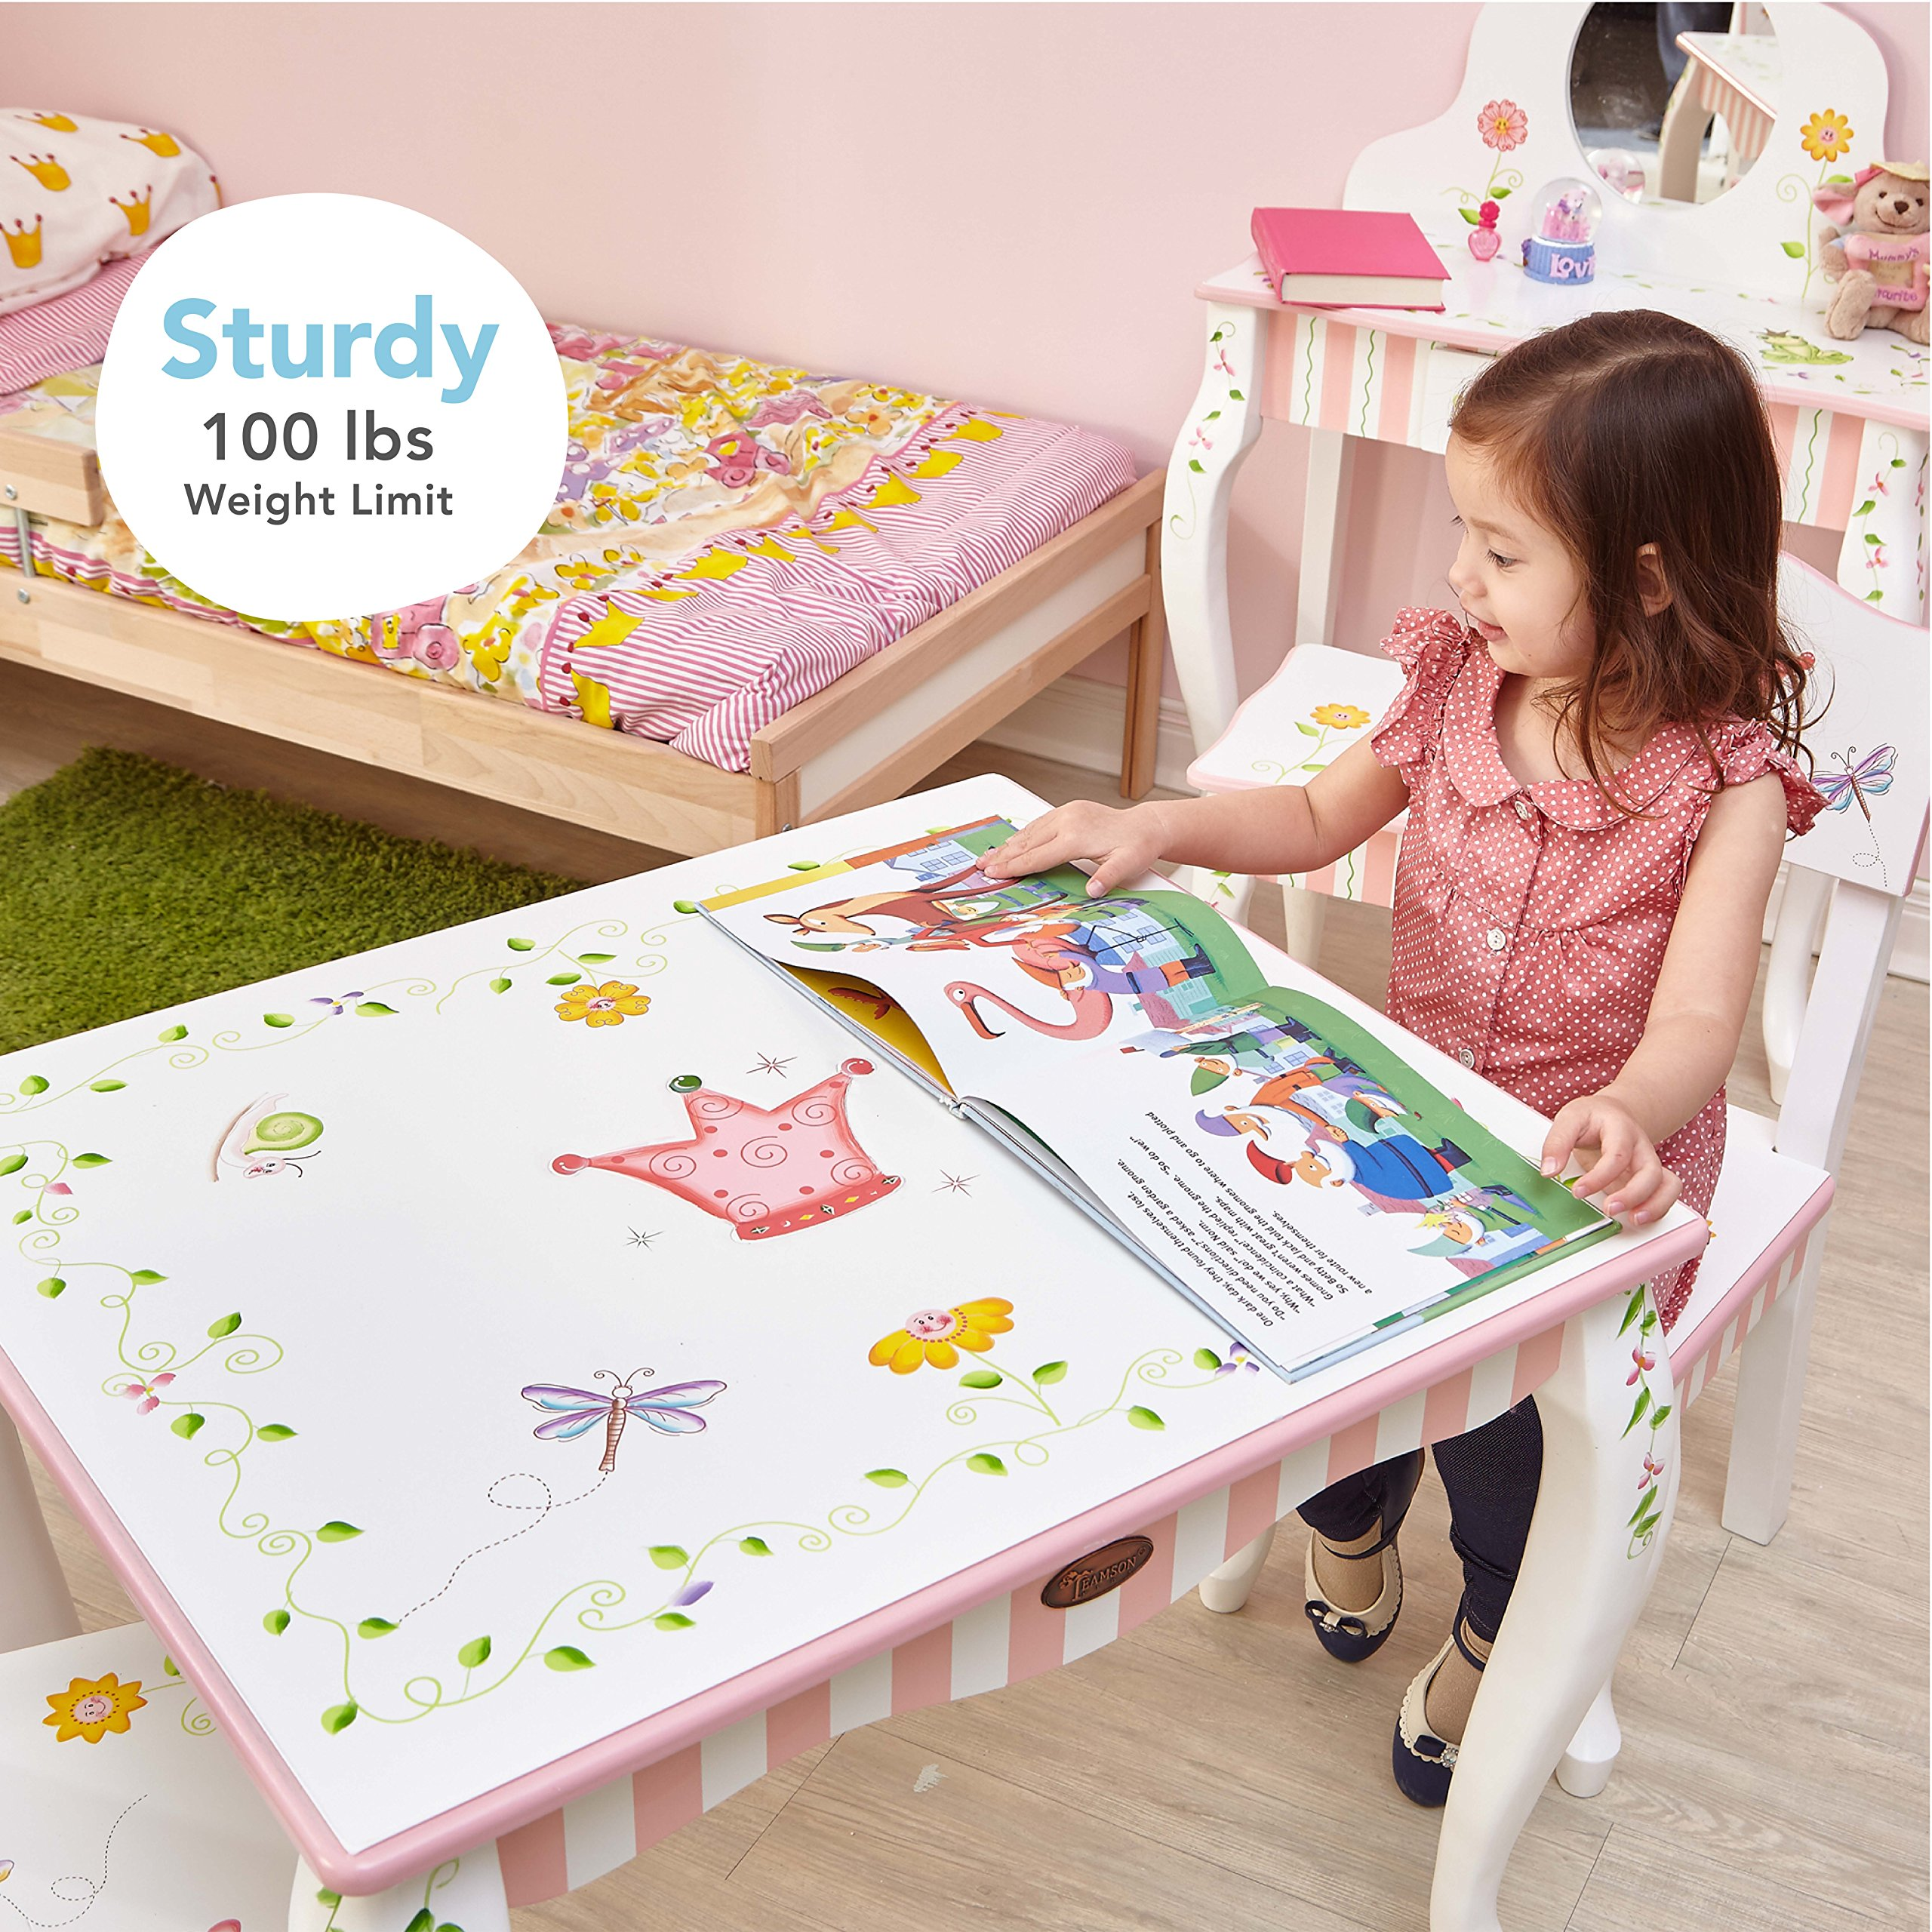 Fantasy Fields - Princess & Frog Thematic Hand Crafted Kids Wooden Table and 2 Chairs Set  Imagination Inspiring Hand Crafted & Hand Painted Details   Non-Toxic, Lead Free Water-based Paint by Fantasy Fields (Image #3)